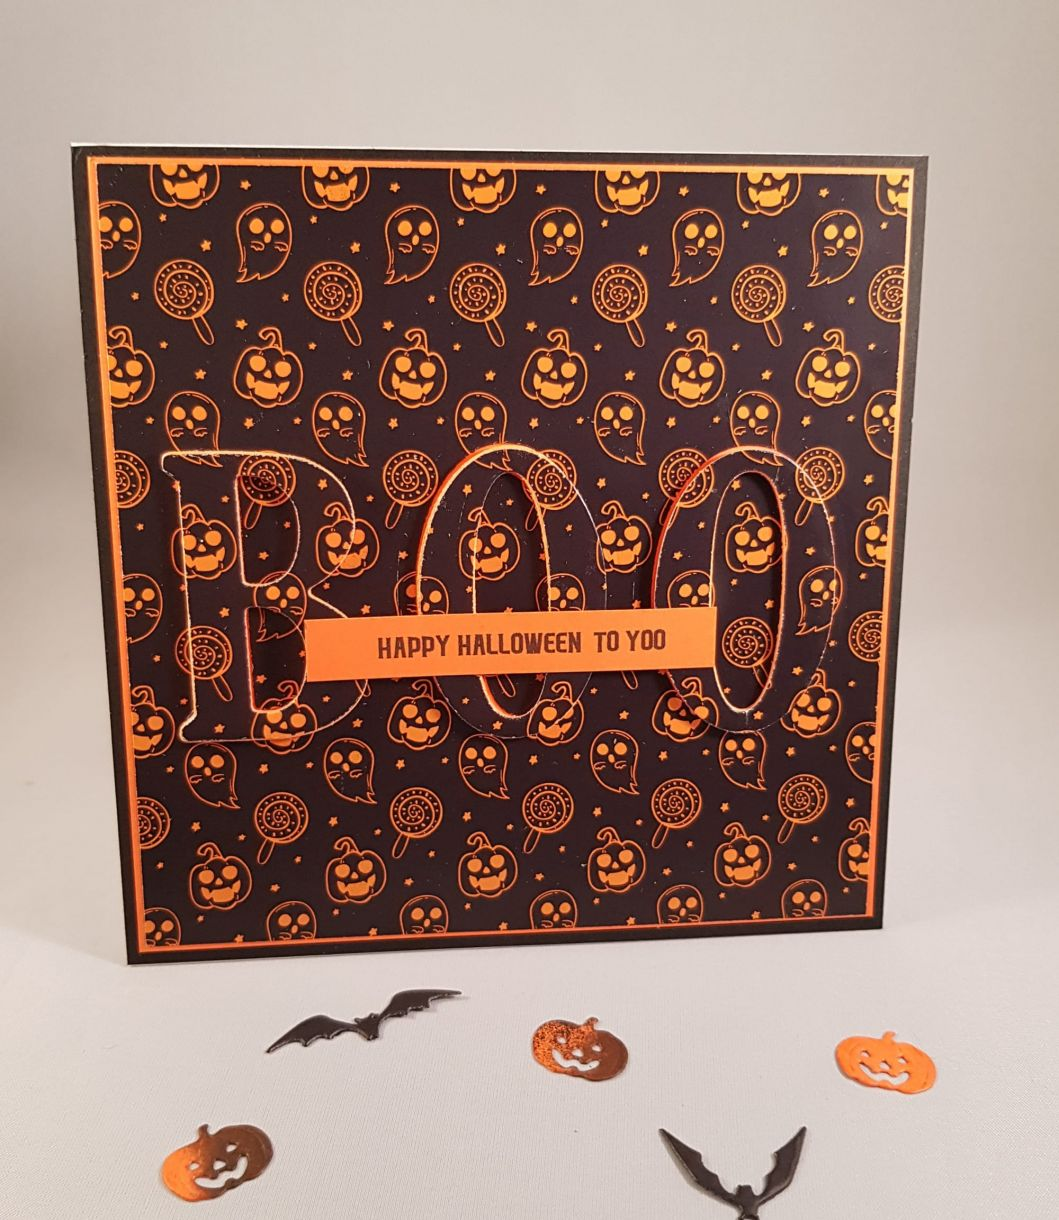 Completed BOO Eclipse Card